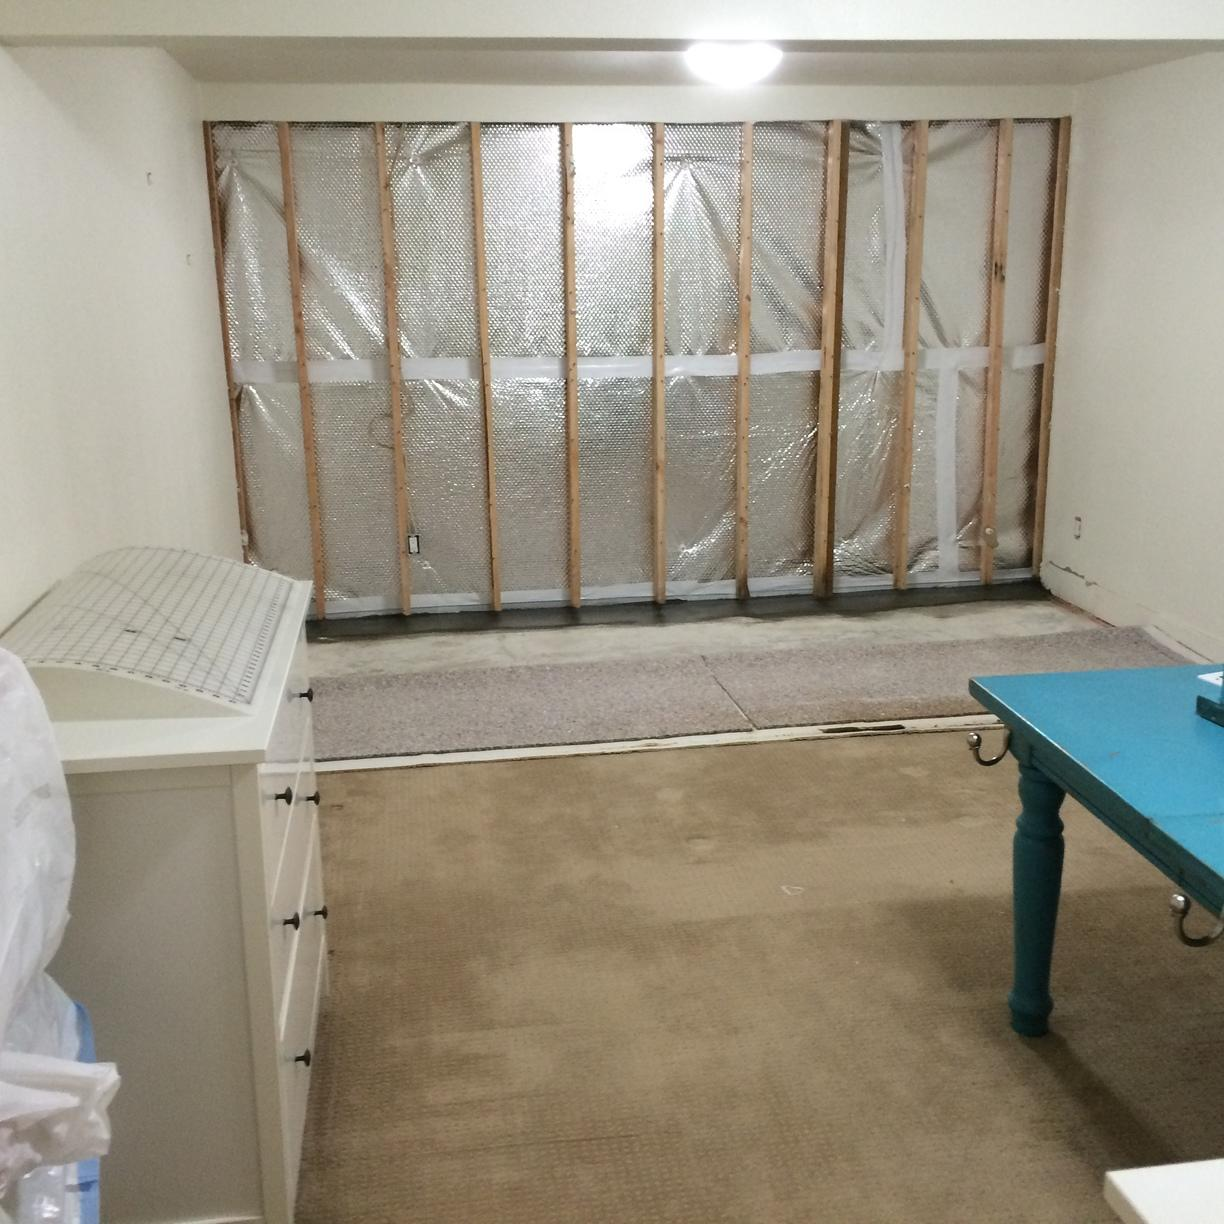 Marylhurst, OR Basement gets Thermaldry Walls Installed - After Photo